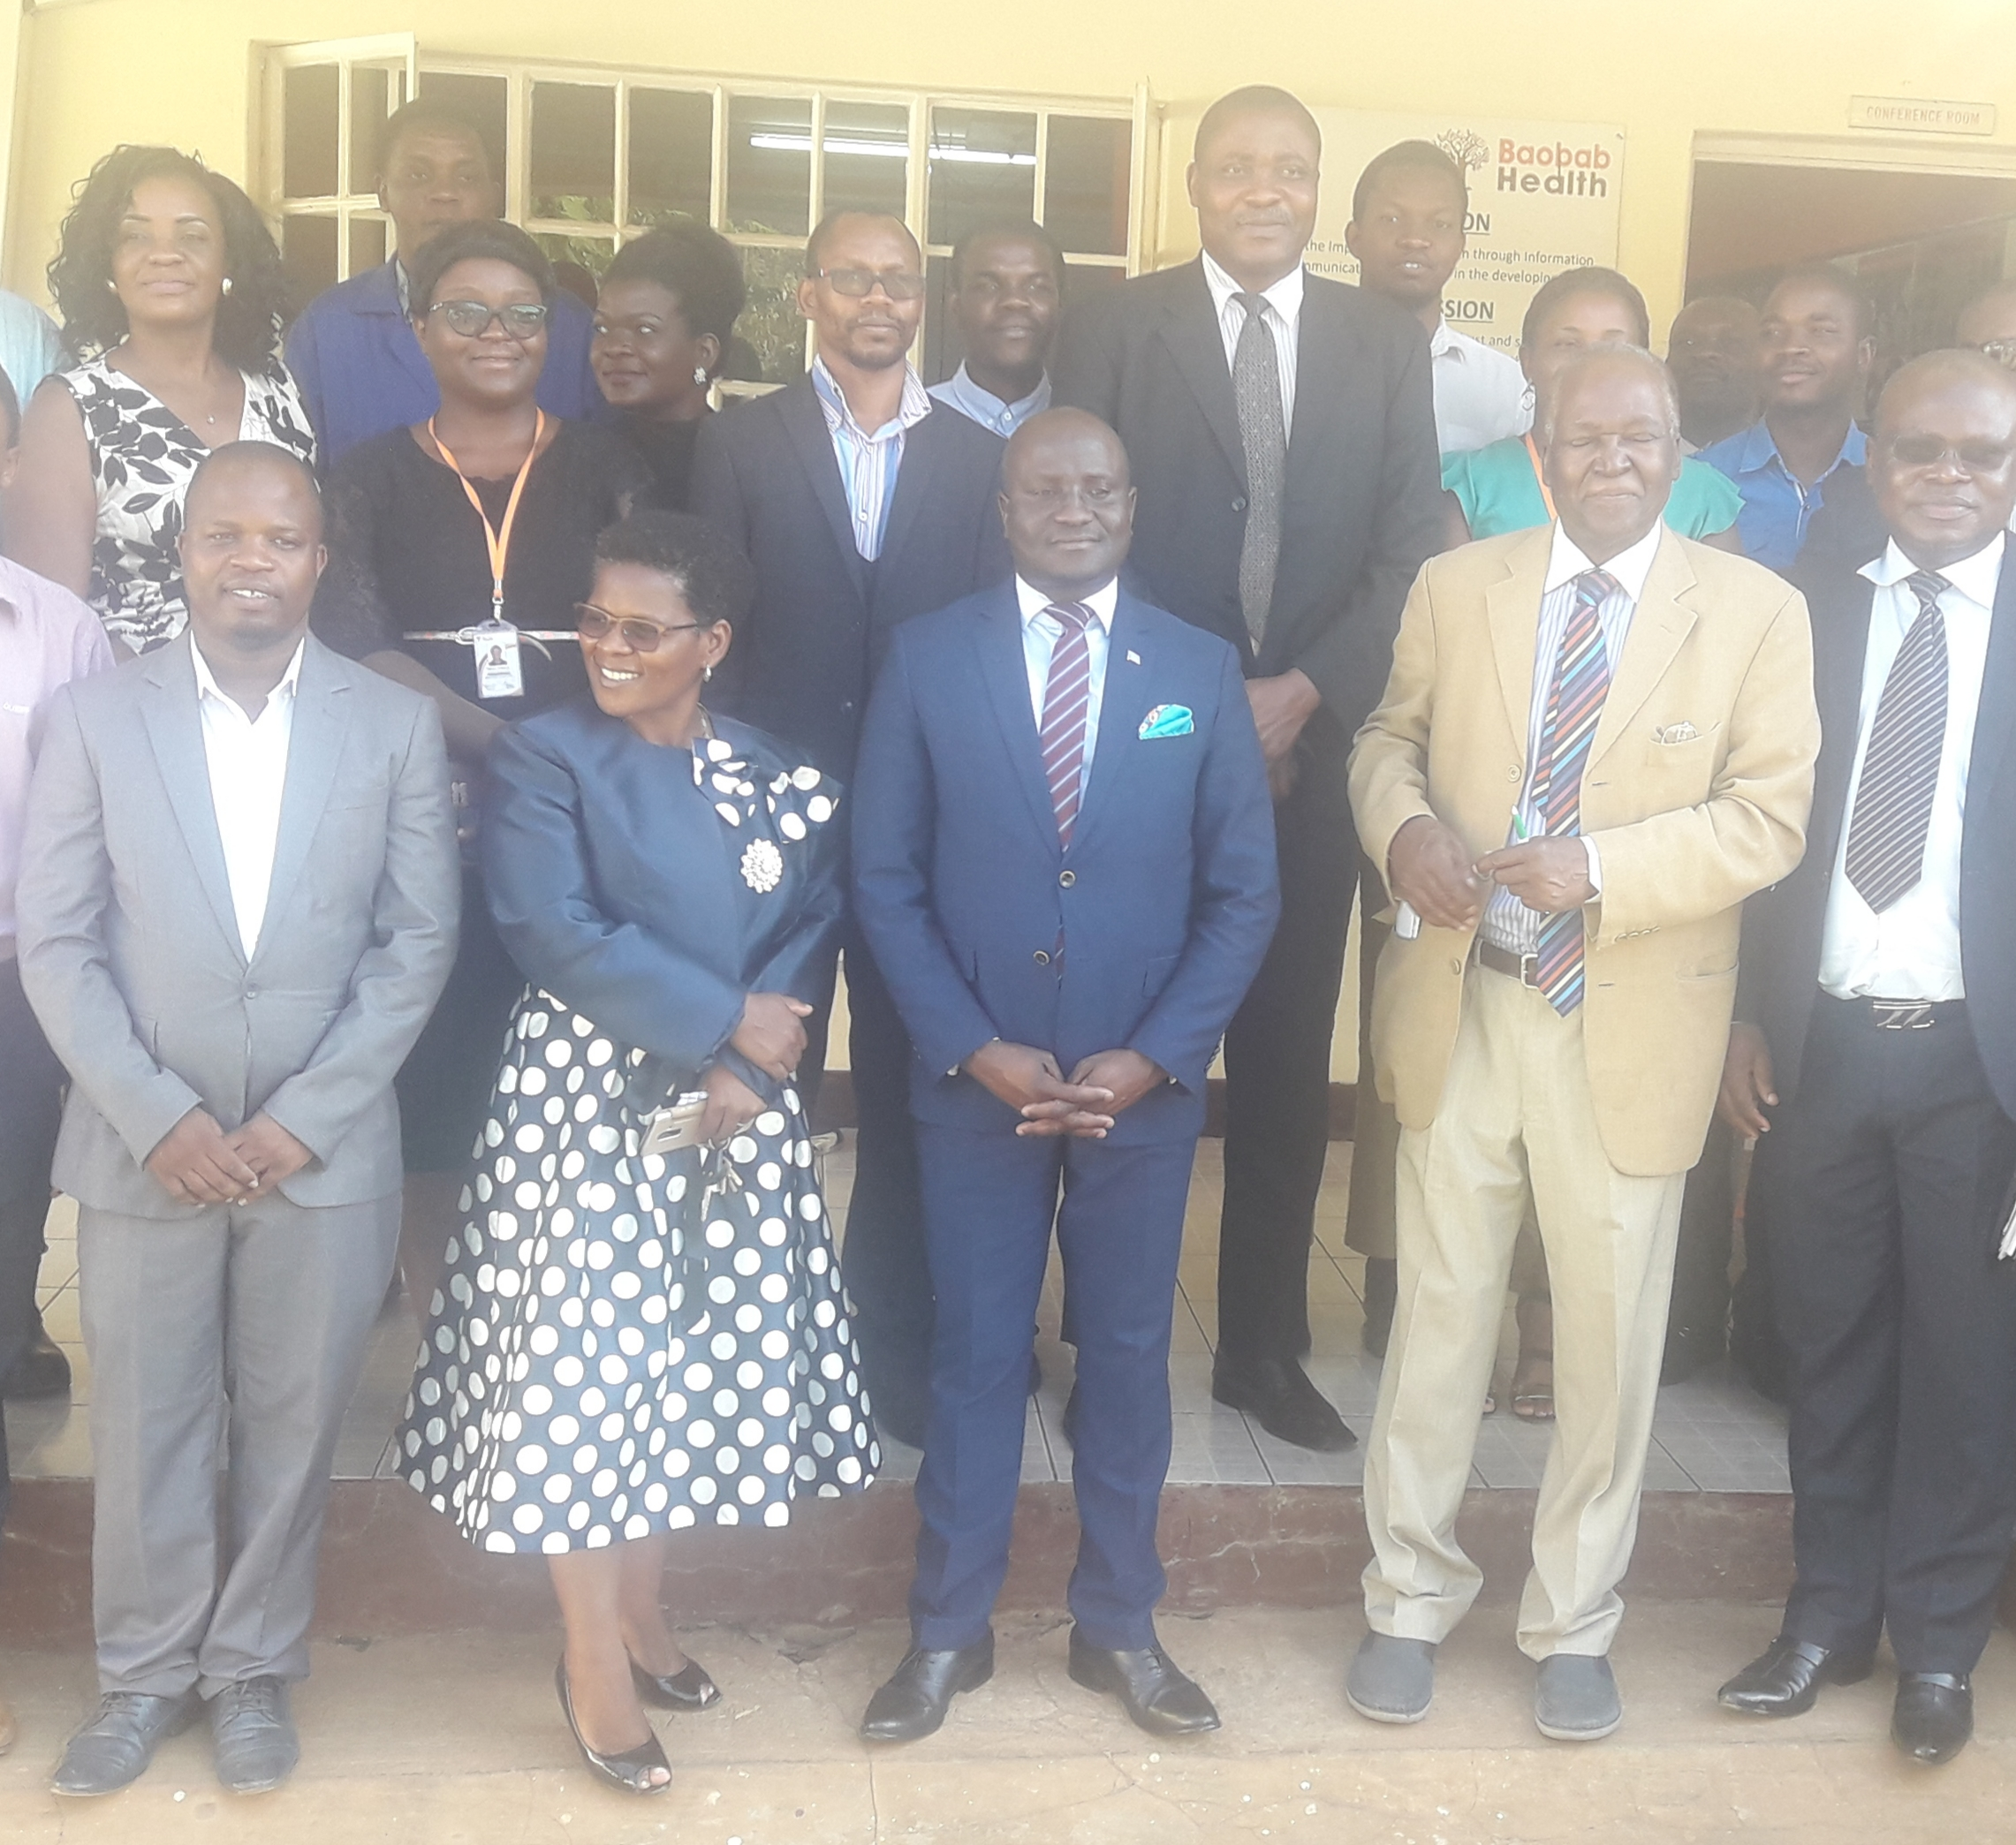 Baobab Health Trust beamons shortage of ICT experts in Public